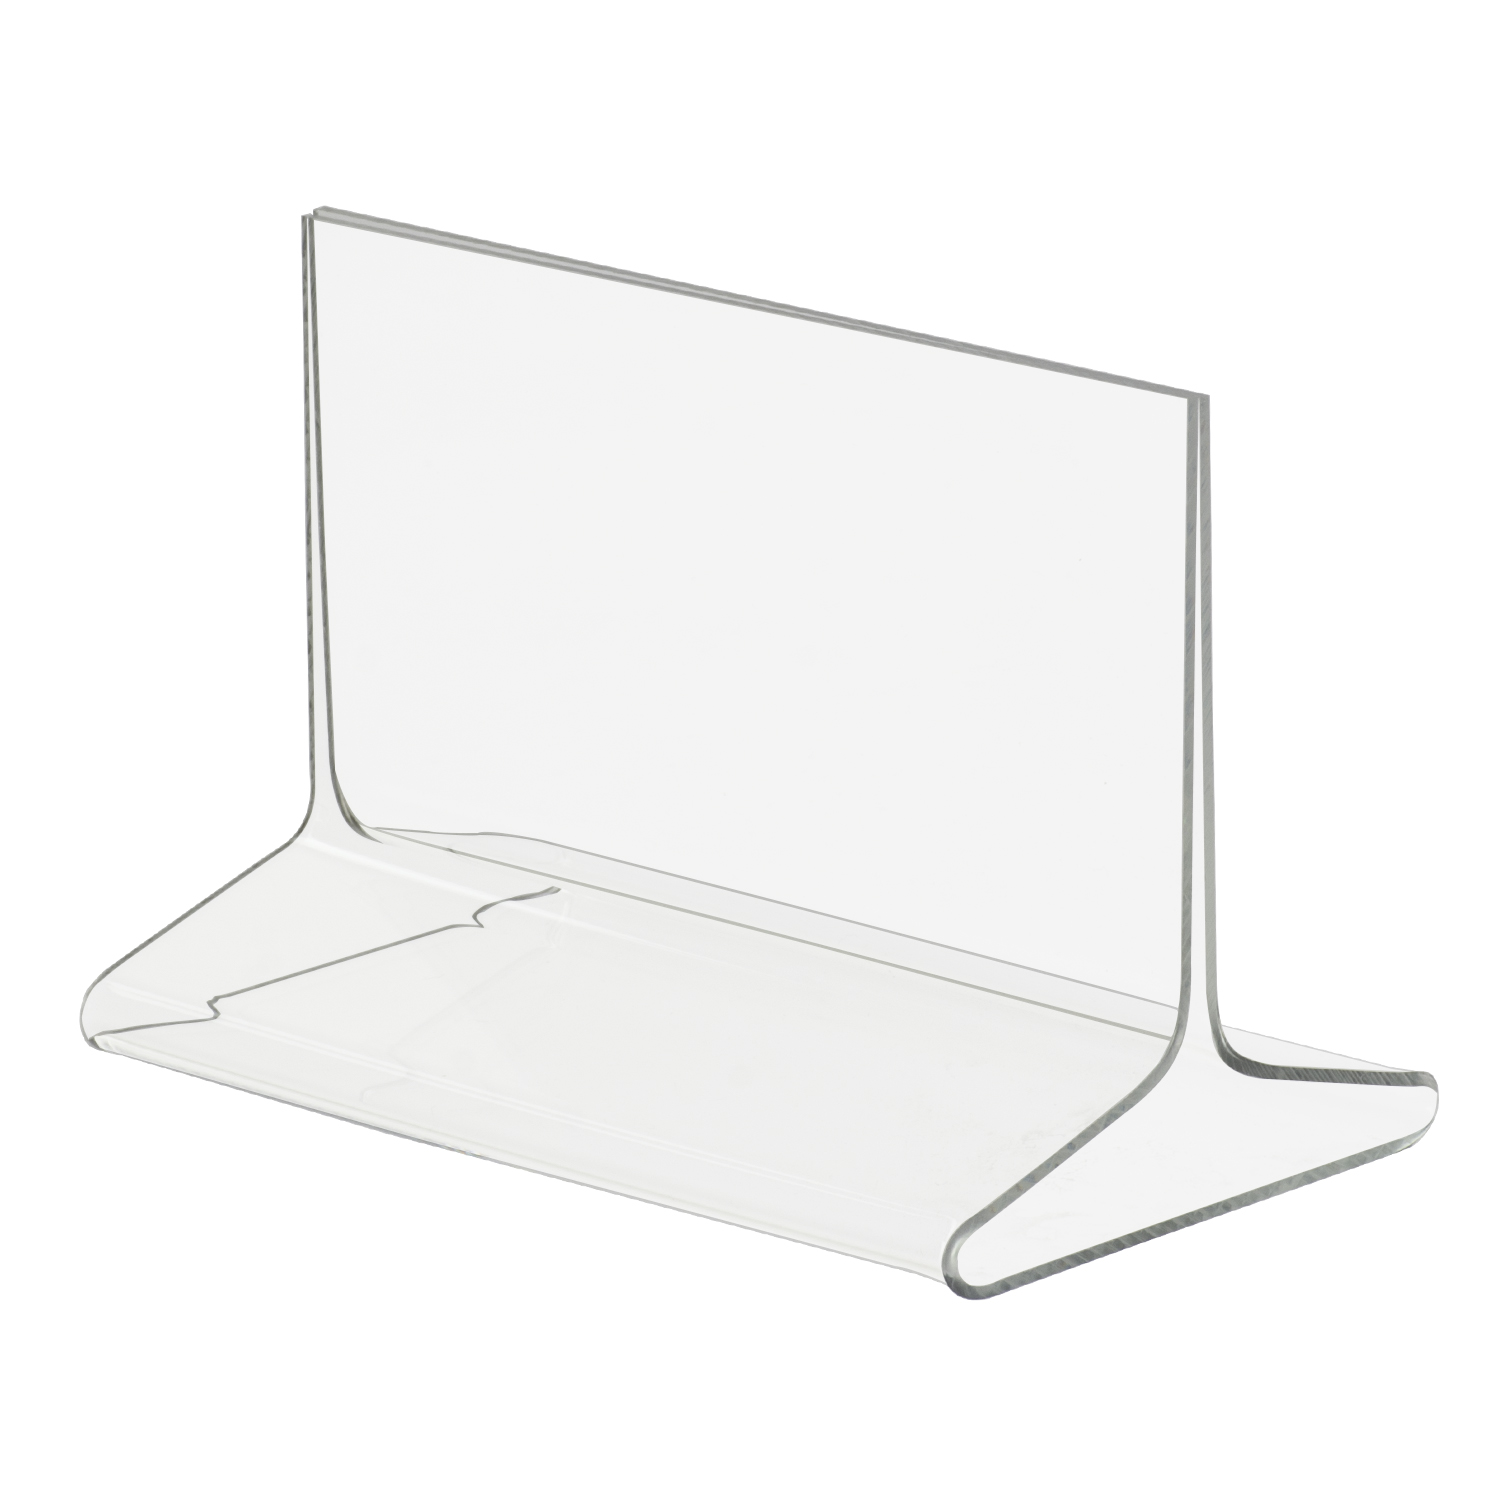 5 5x3 5 Top Loading Double Sided Acrylic Sign Holder